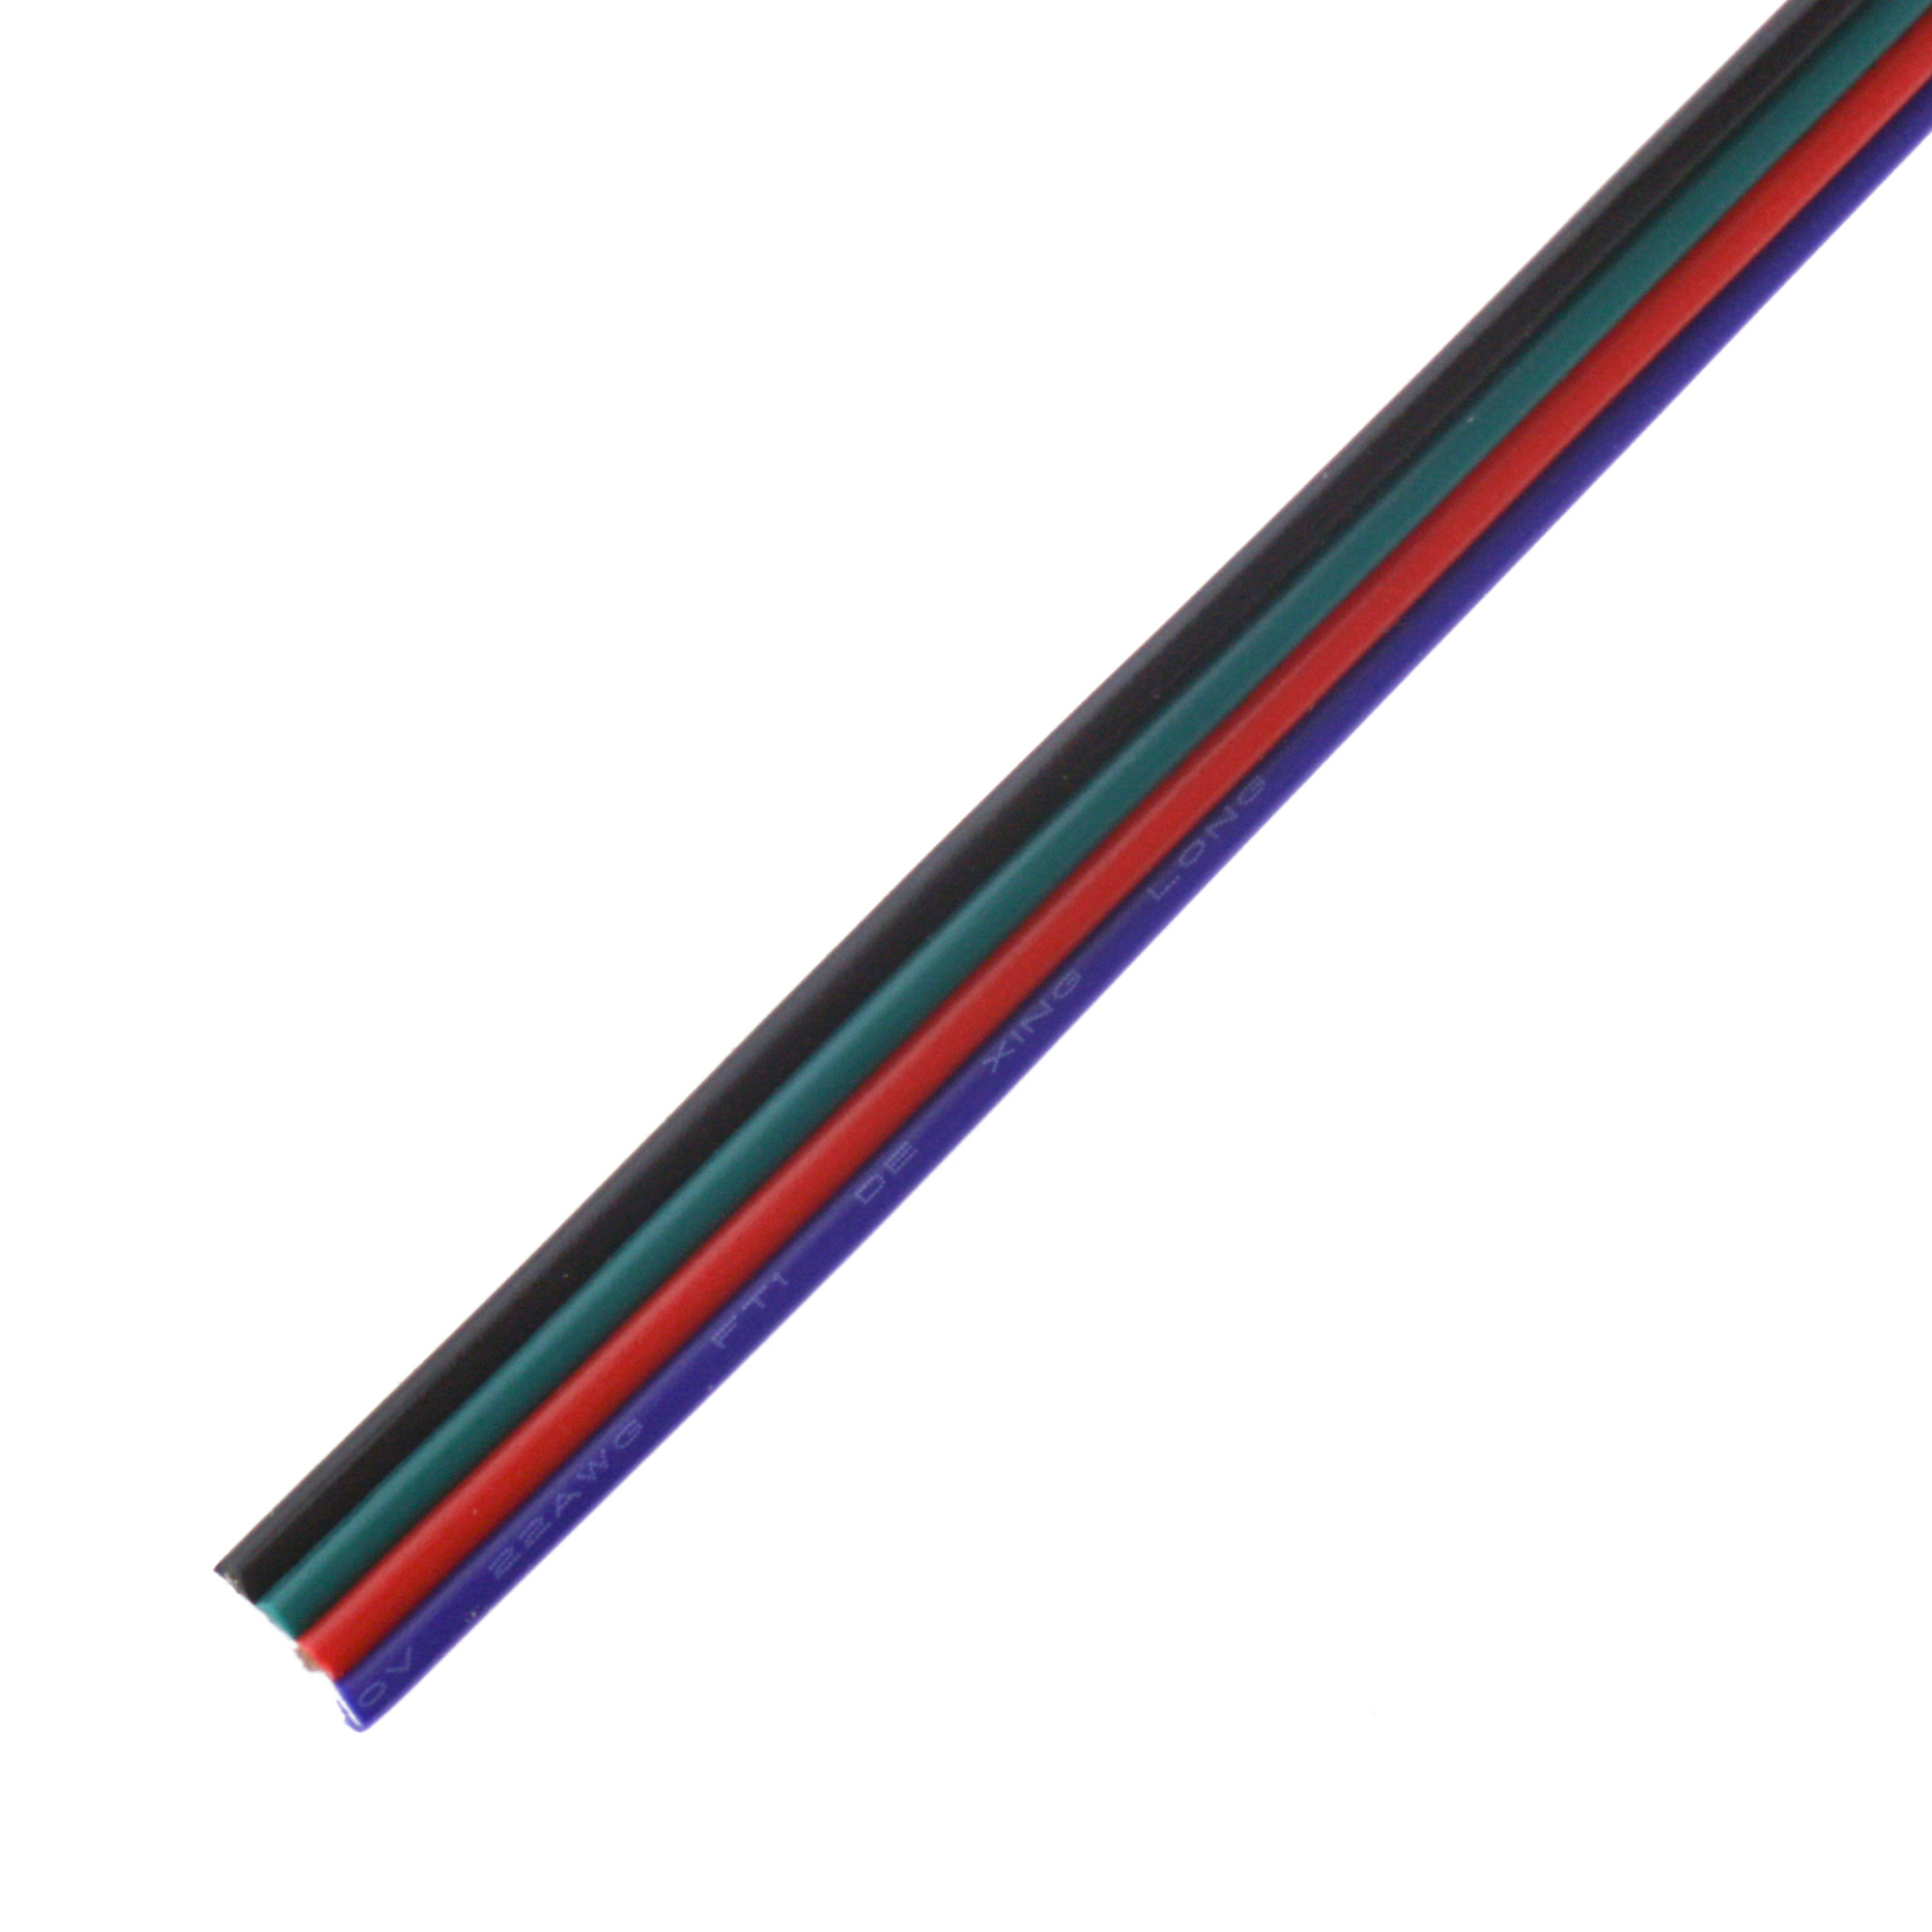 RGB connection wire - 20 meter